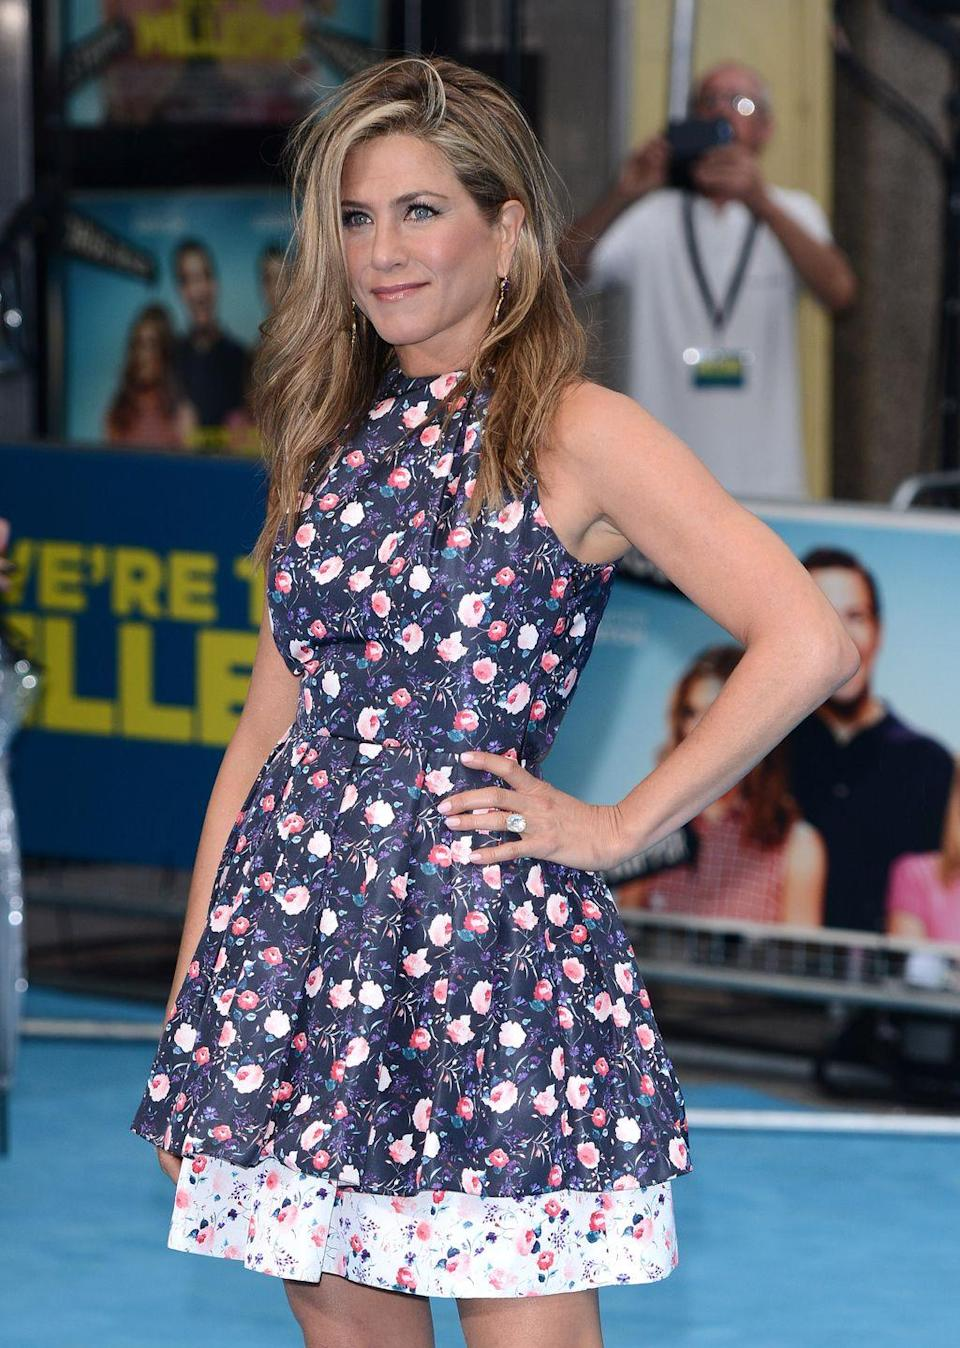 """<p>Jennifer is all about hanging out outside, but she wears sunscreen. 'I still sit in the sun...you need that vitamin D for a glow and your mood,' Jennifer told <a href=""""https://www.vogue.com/article/jennifer-aniston-skincare-routine-the-morning-show"""" rel=""""nofollow noopener"""" target=""""_blank"""" data-ylk=""""slk:Vogue"""" class=""""link rapid-noclick-resp"""">Vogue</a>.</p>"""